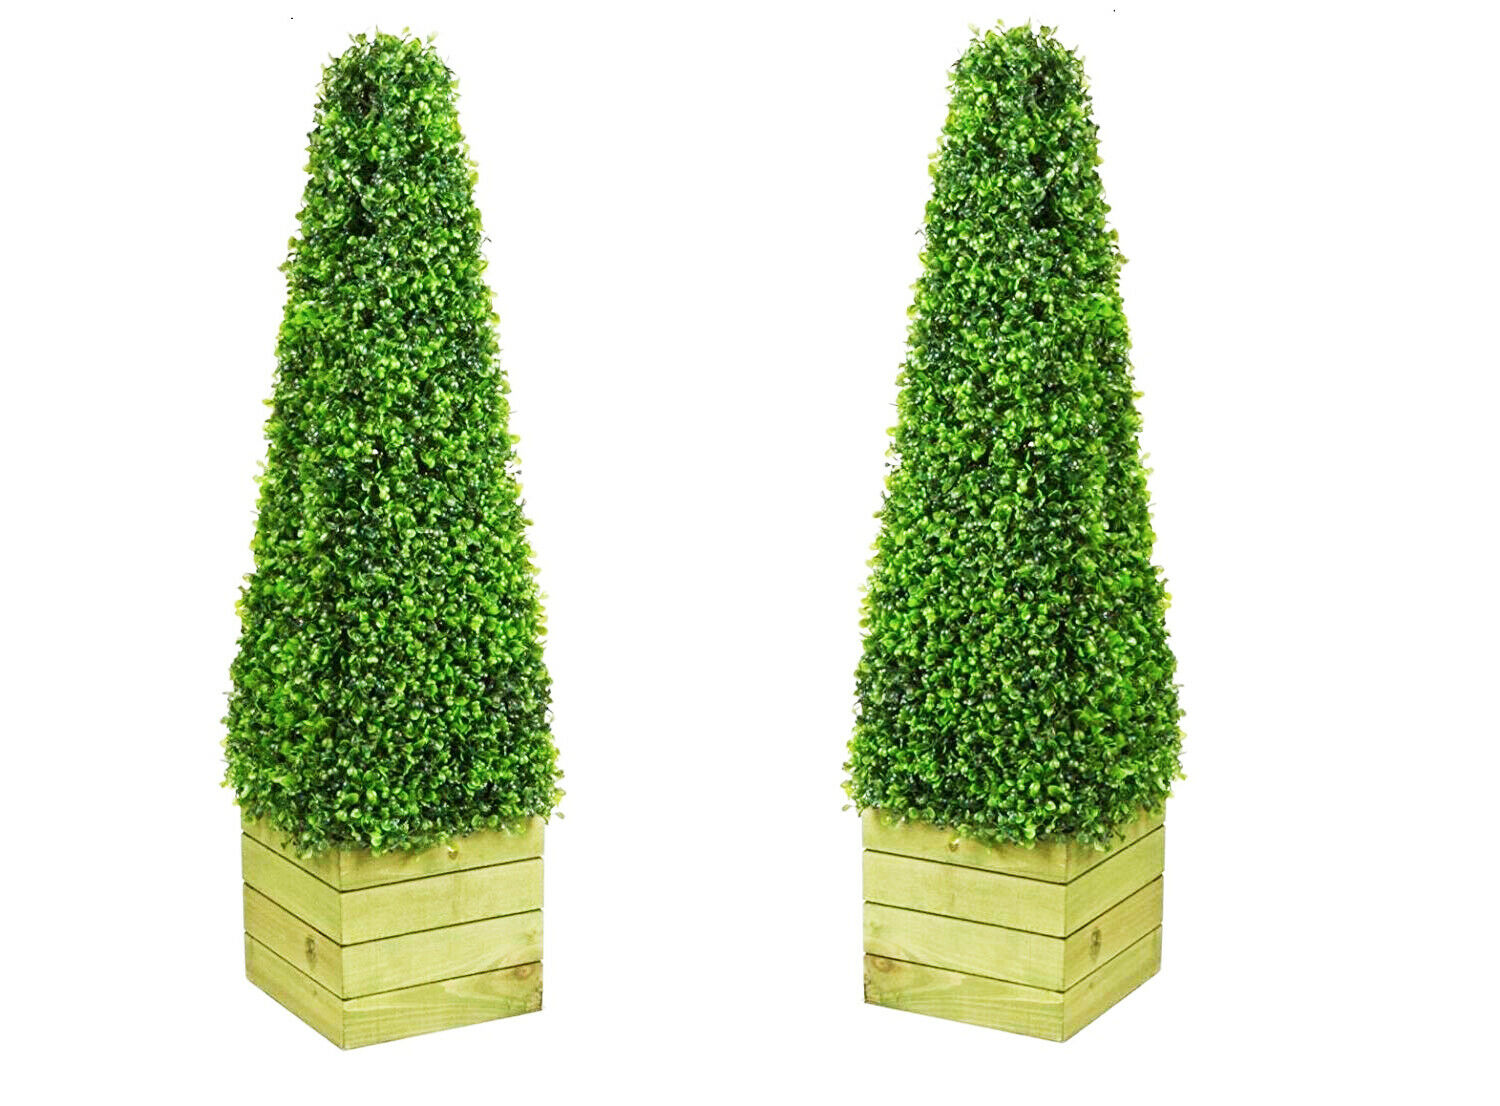 2 X Artificial Pyramid Topiary Trees Suitable For Outdoors Or Indoor For Sale Ebay